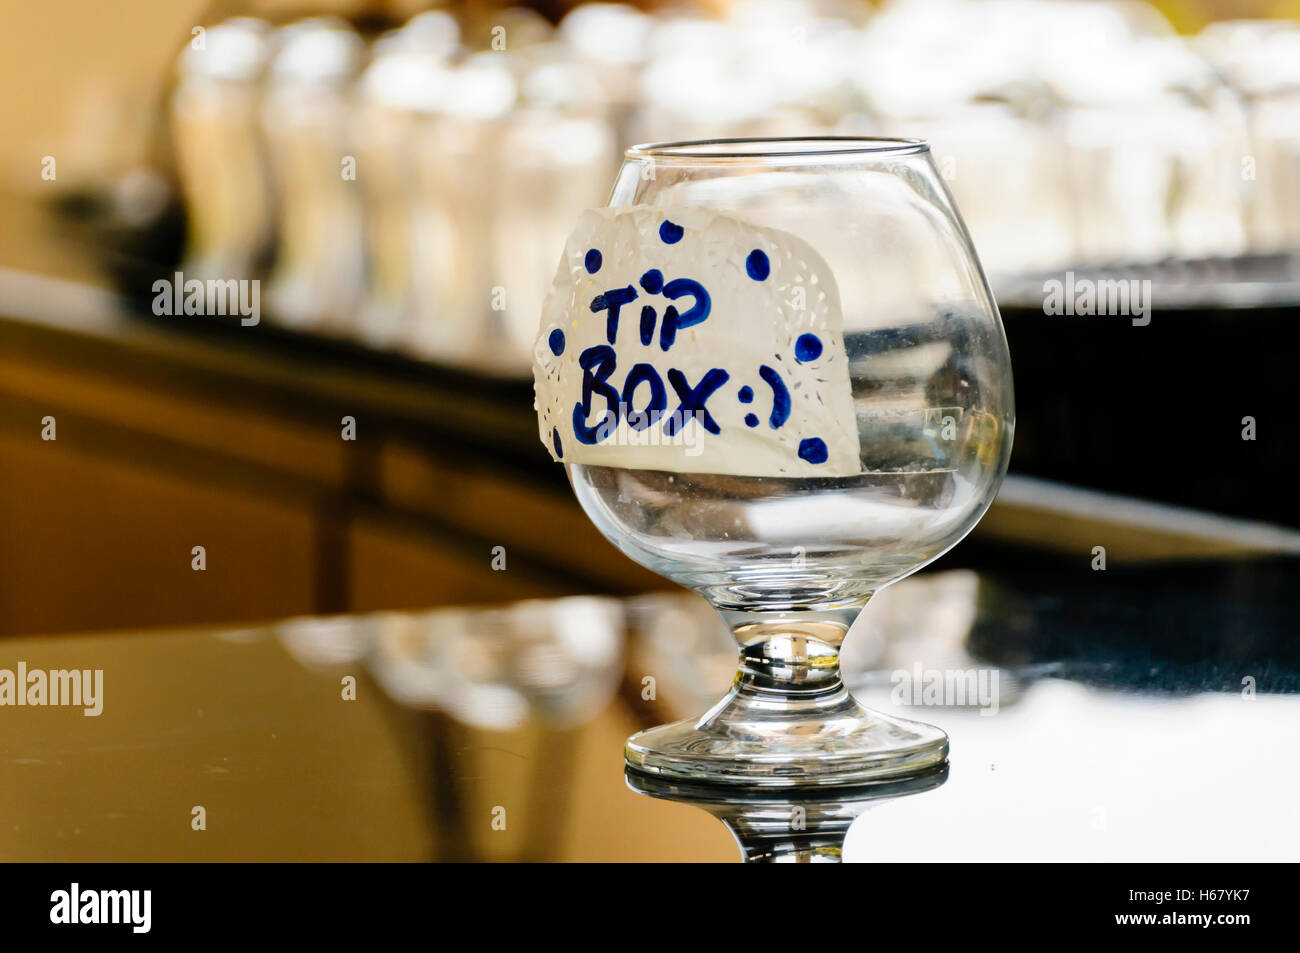 a-brandy-glass-tip-box-on-the-counter-of